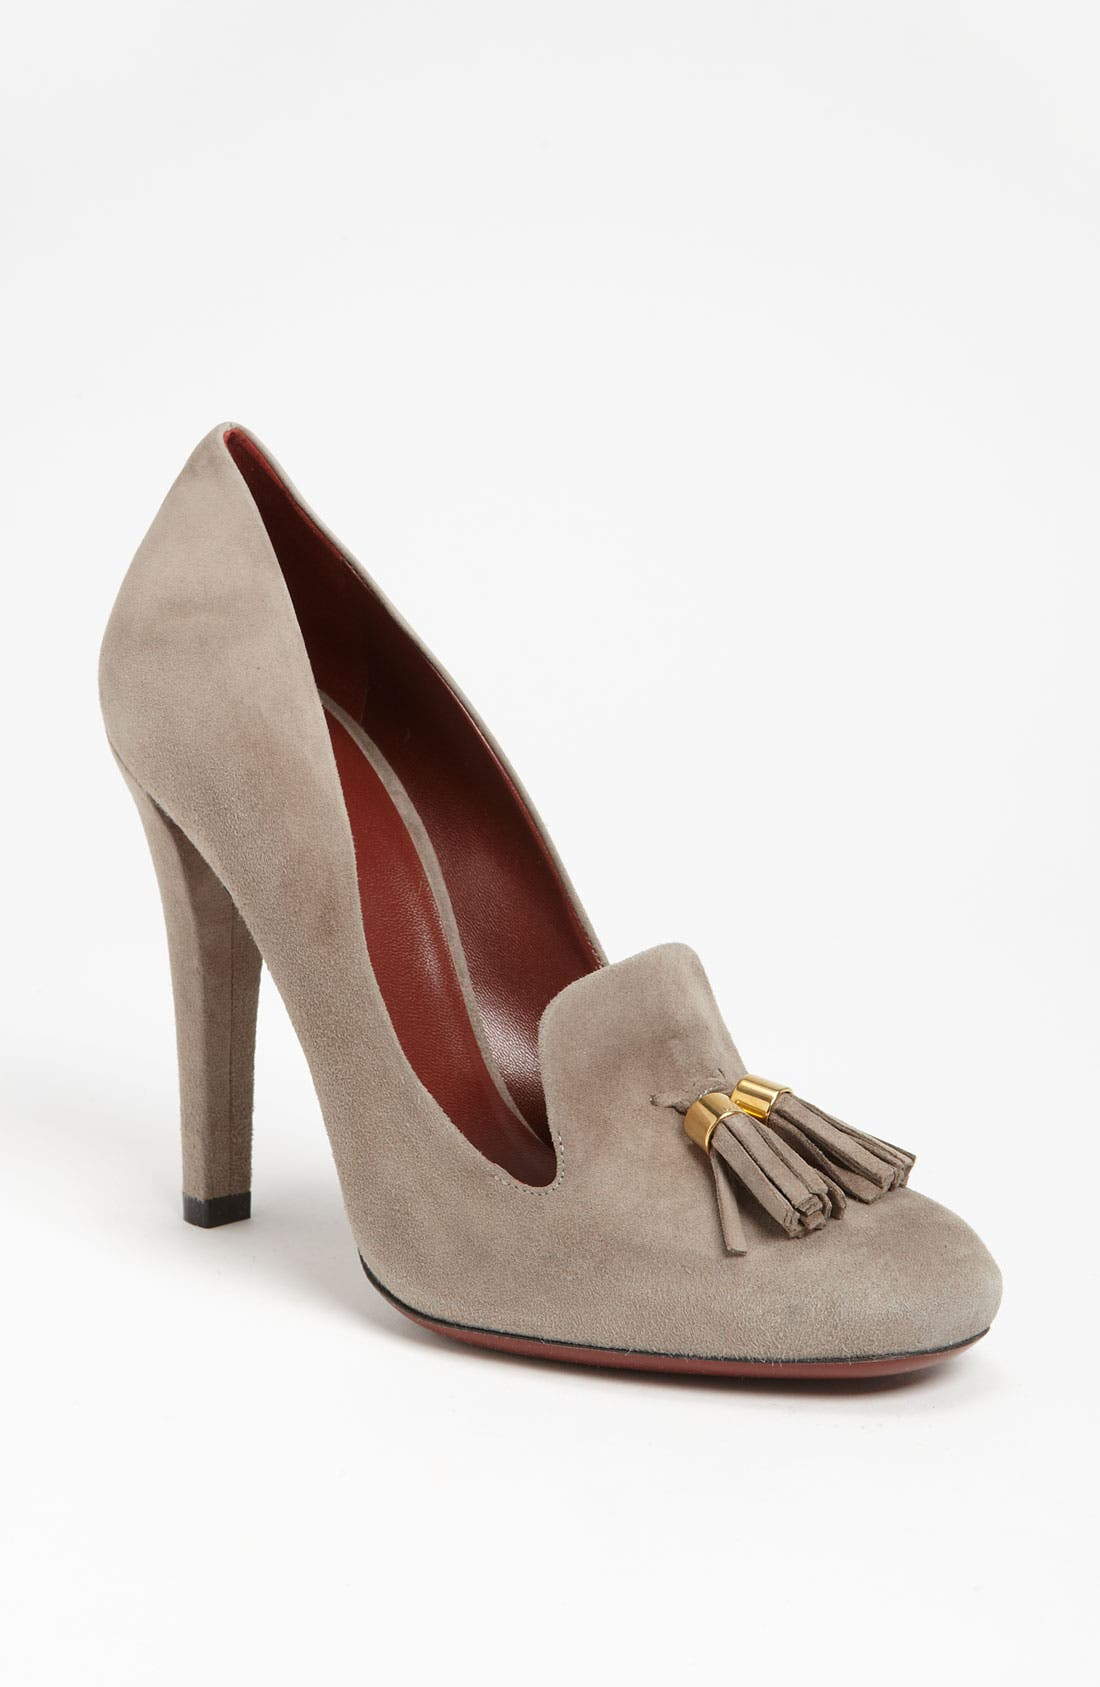 Alternate Image 1 Selected - Gucci 'Mischa' Loafer Pump